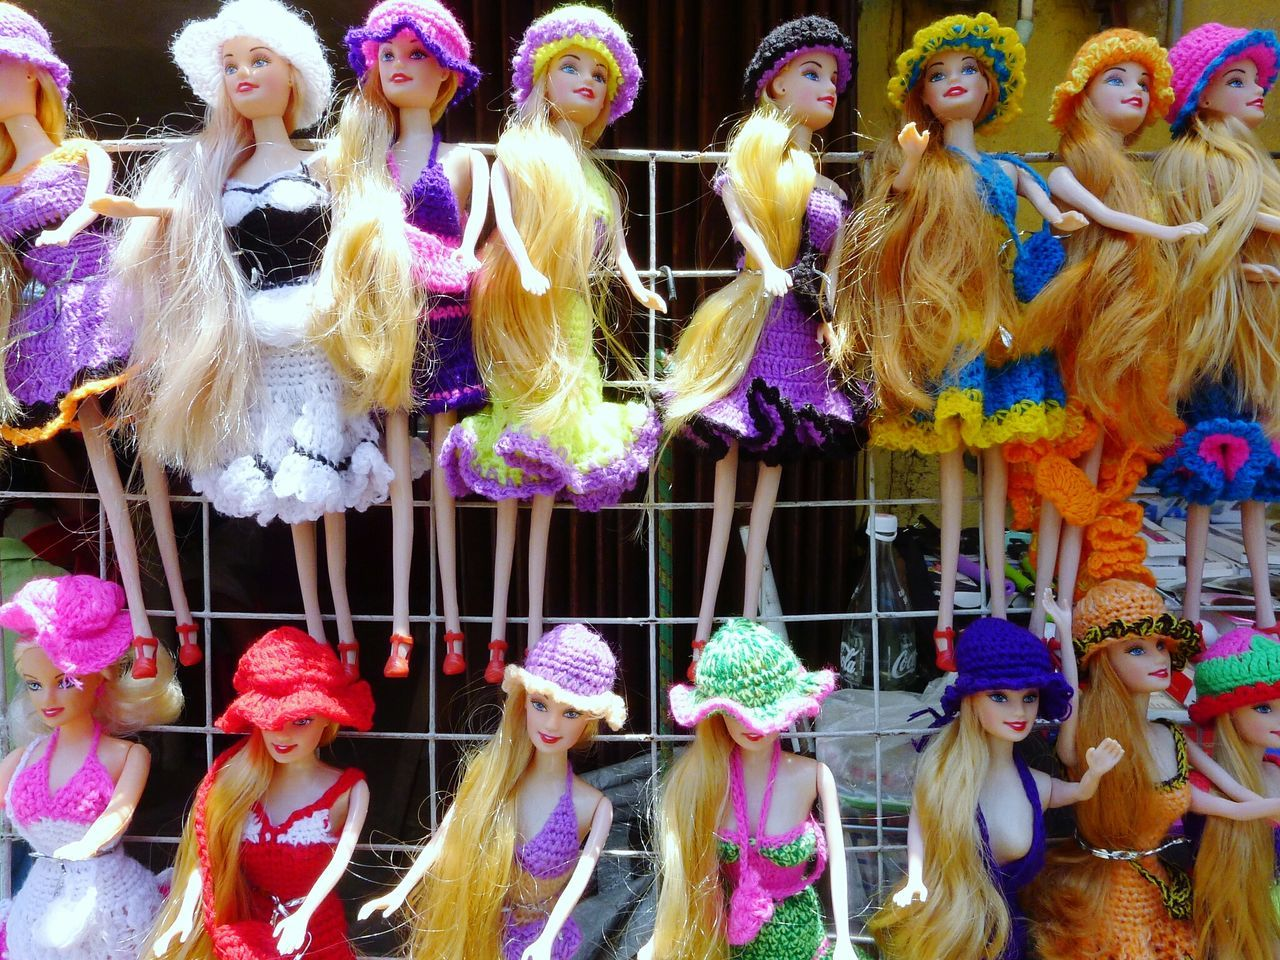 For Sale Retail  Outdoors Variation Real People Market Stall Multi Colored Day Men Colorful Colors Candlecolor Color EyeEm Best Shots Eyeemphotography EyeEm Best Edits EyeEm Gallery Barbie Barbie Girl Barbie Collector Barbiedoll Doll Dolls Barbie<3 Barbies